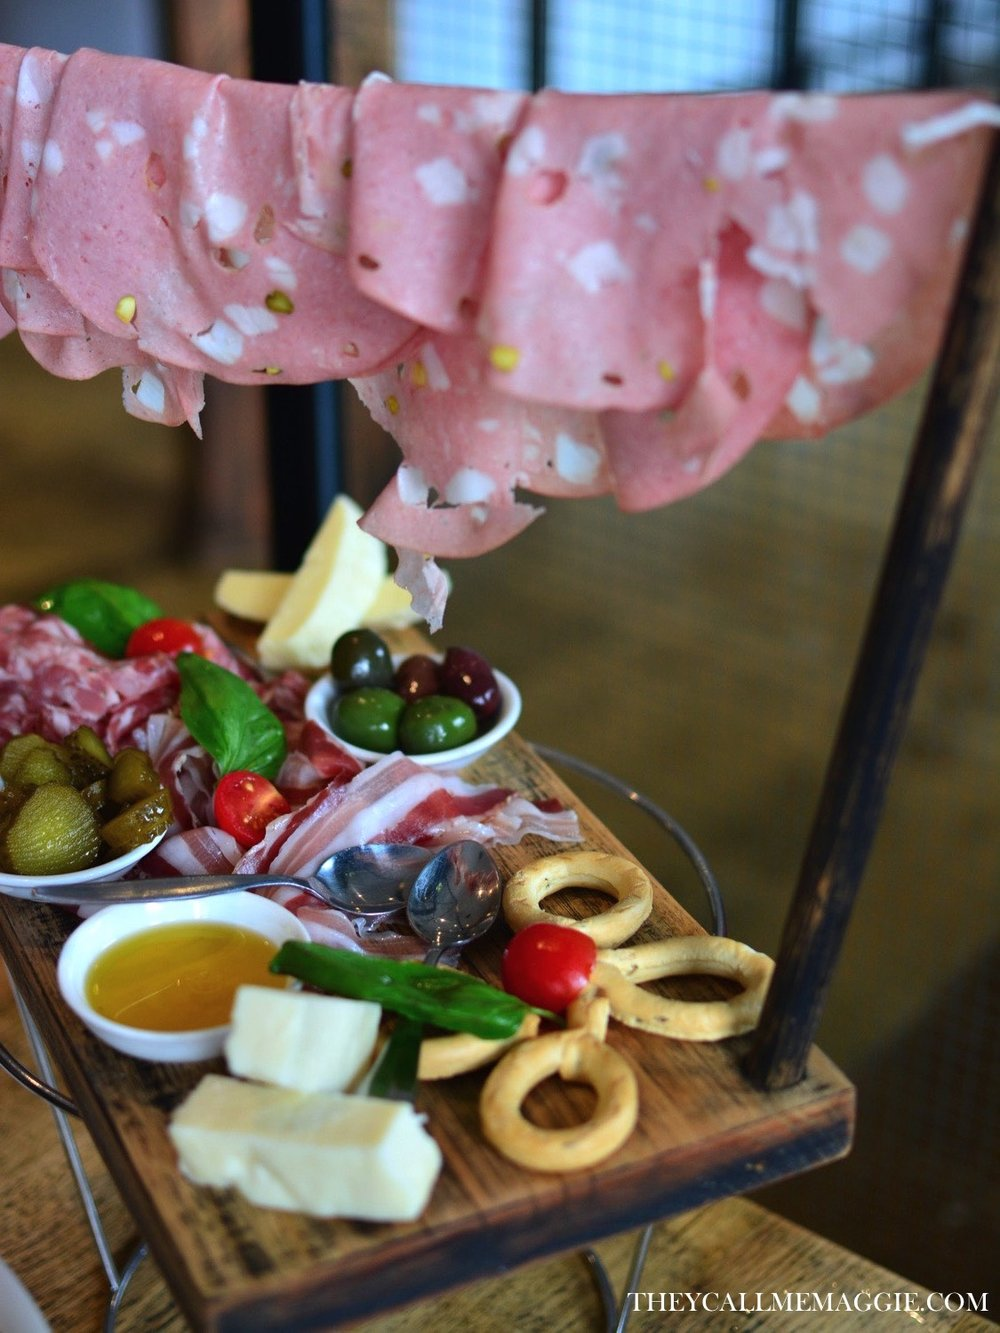 Degustazione mista - a selection of Italian cured meats and cheeses